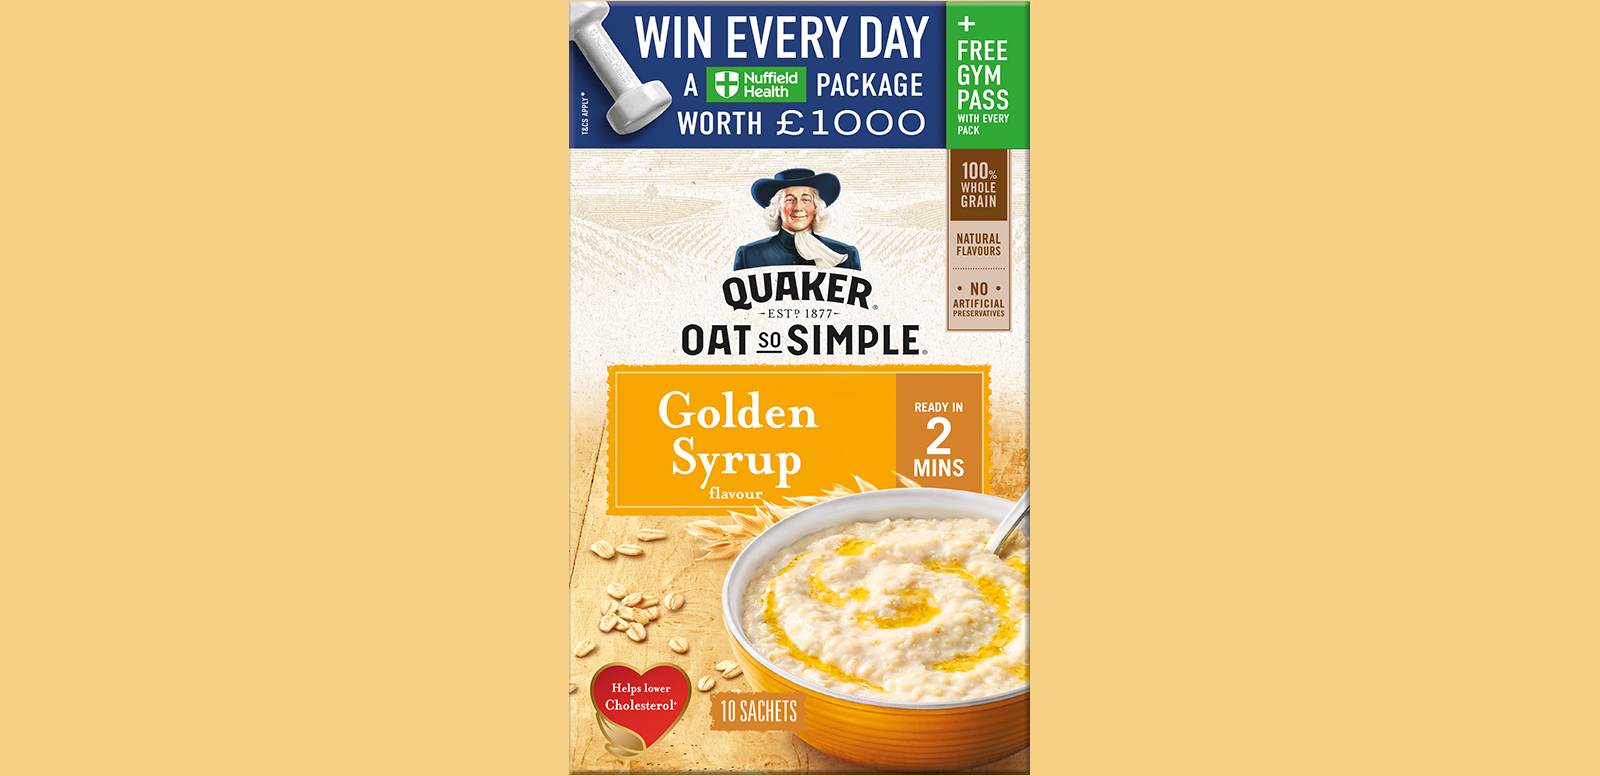 quaker oats sweepstakes 2019 quaker oats offers consumers the chance to win a nuffield 7022